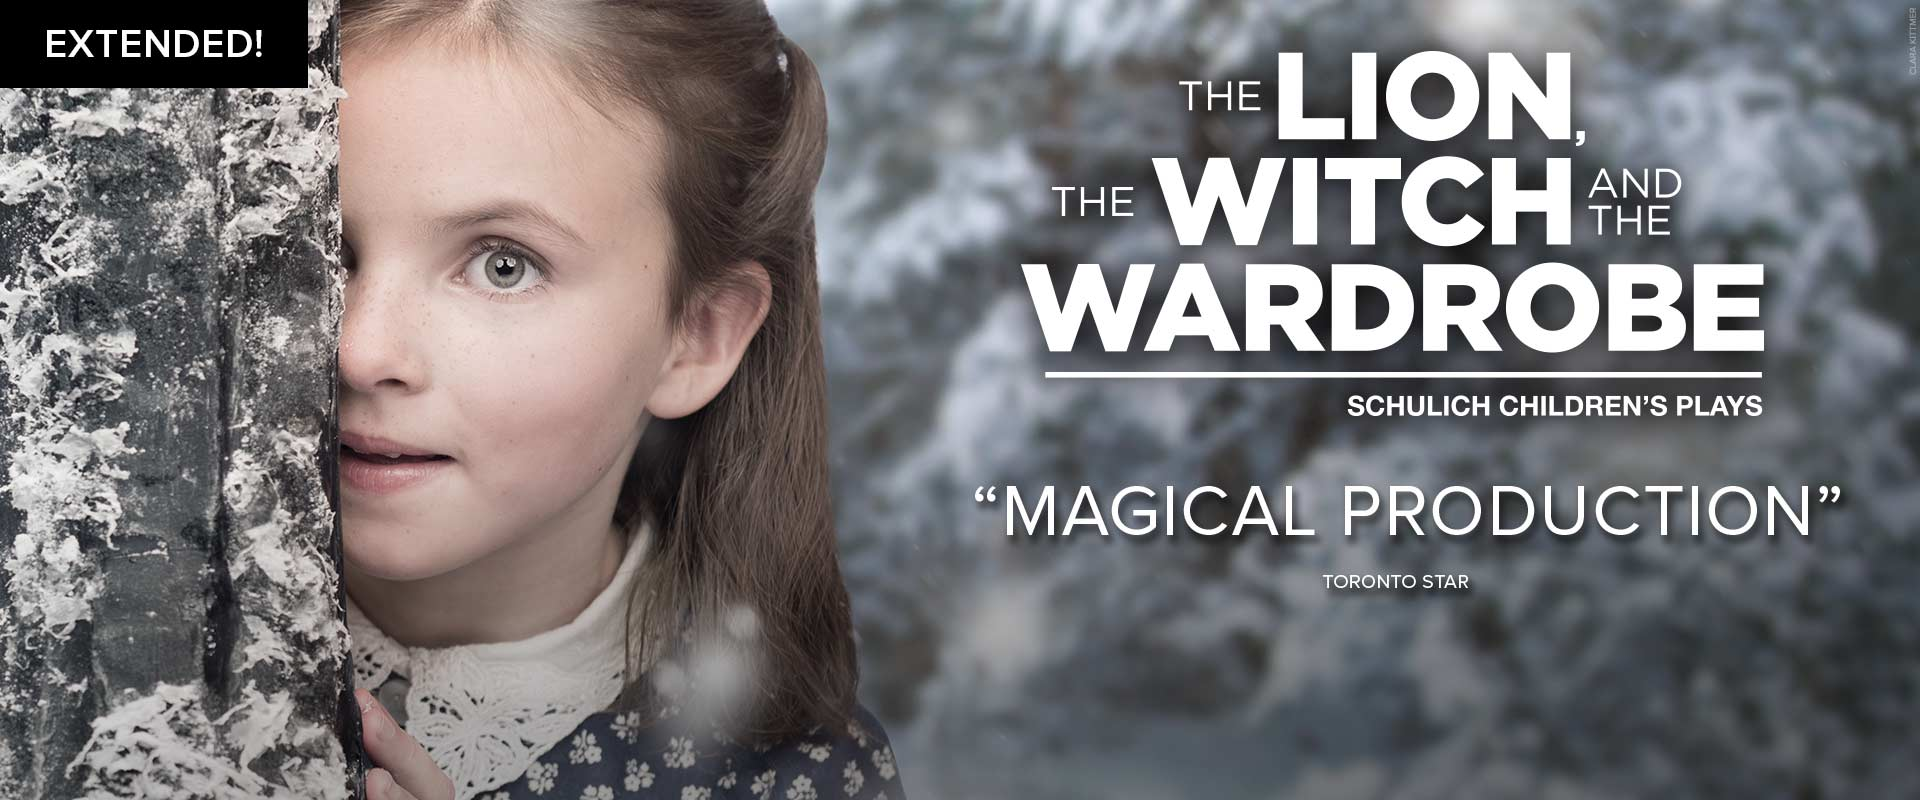 Publicity image from The Lion, the Witch and the Wardrobe